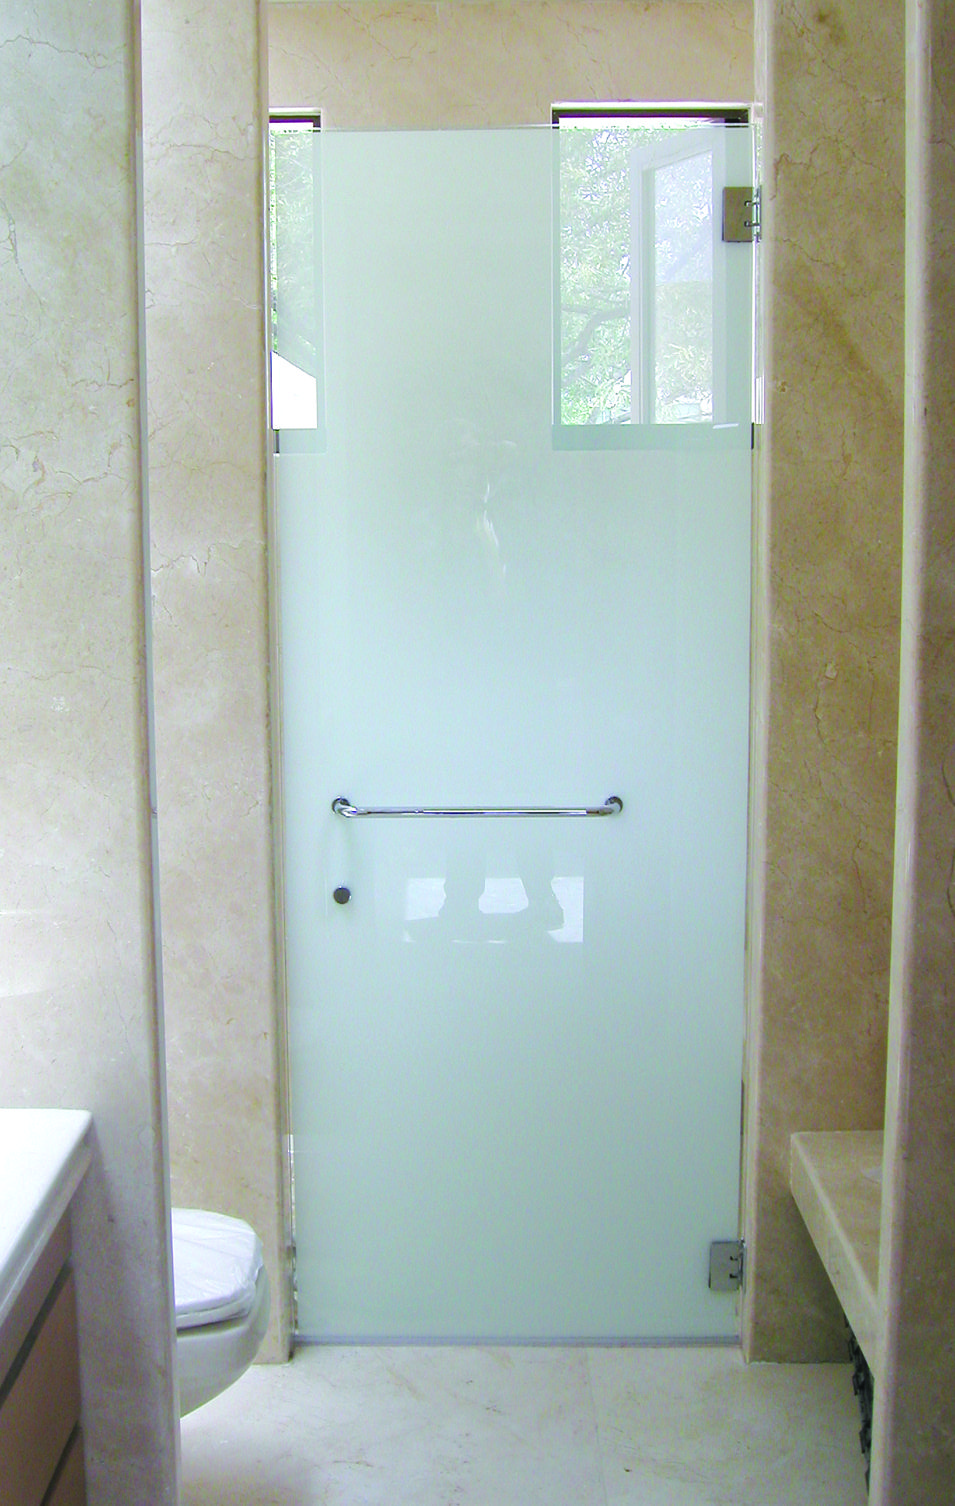 Frosted Glass Shower Doors Sale.Austin Shower Door Contractor Offers Sales And Installations